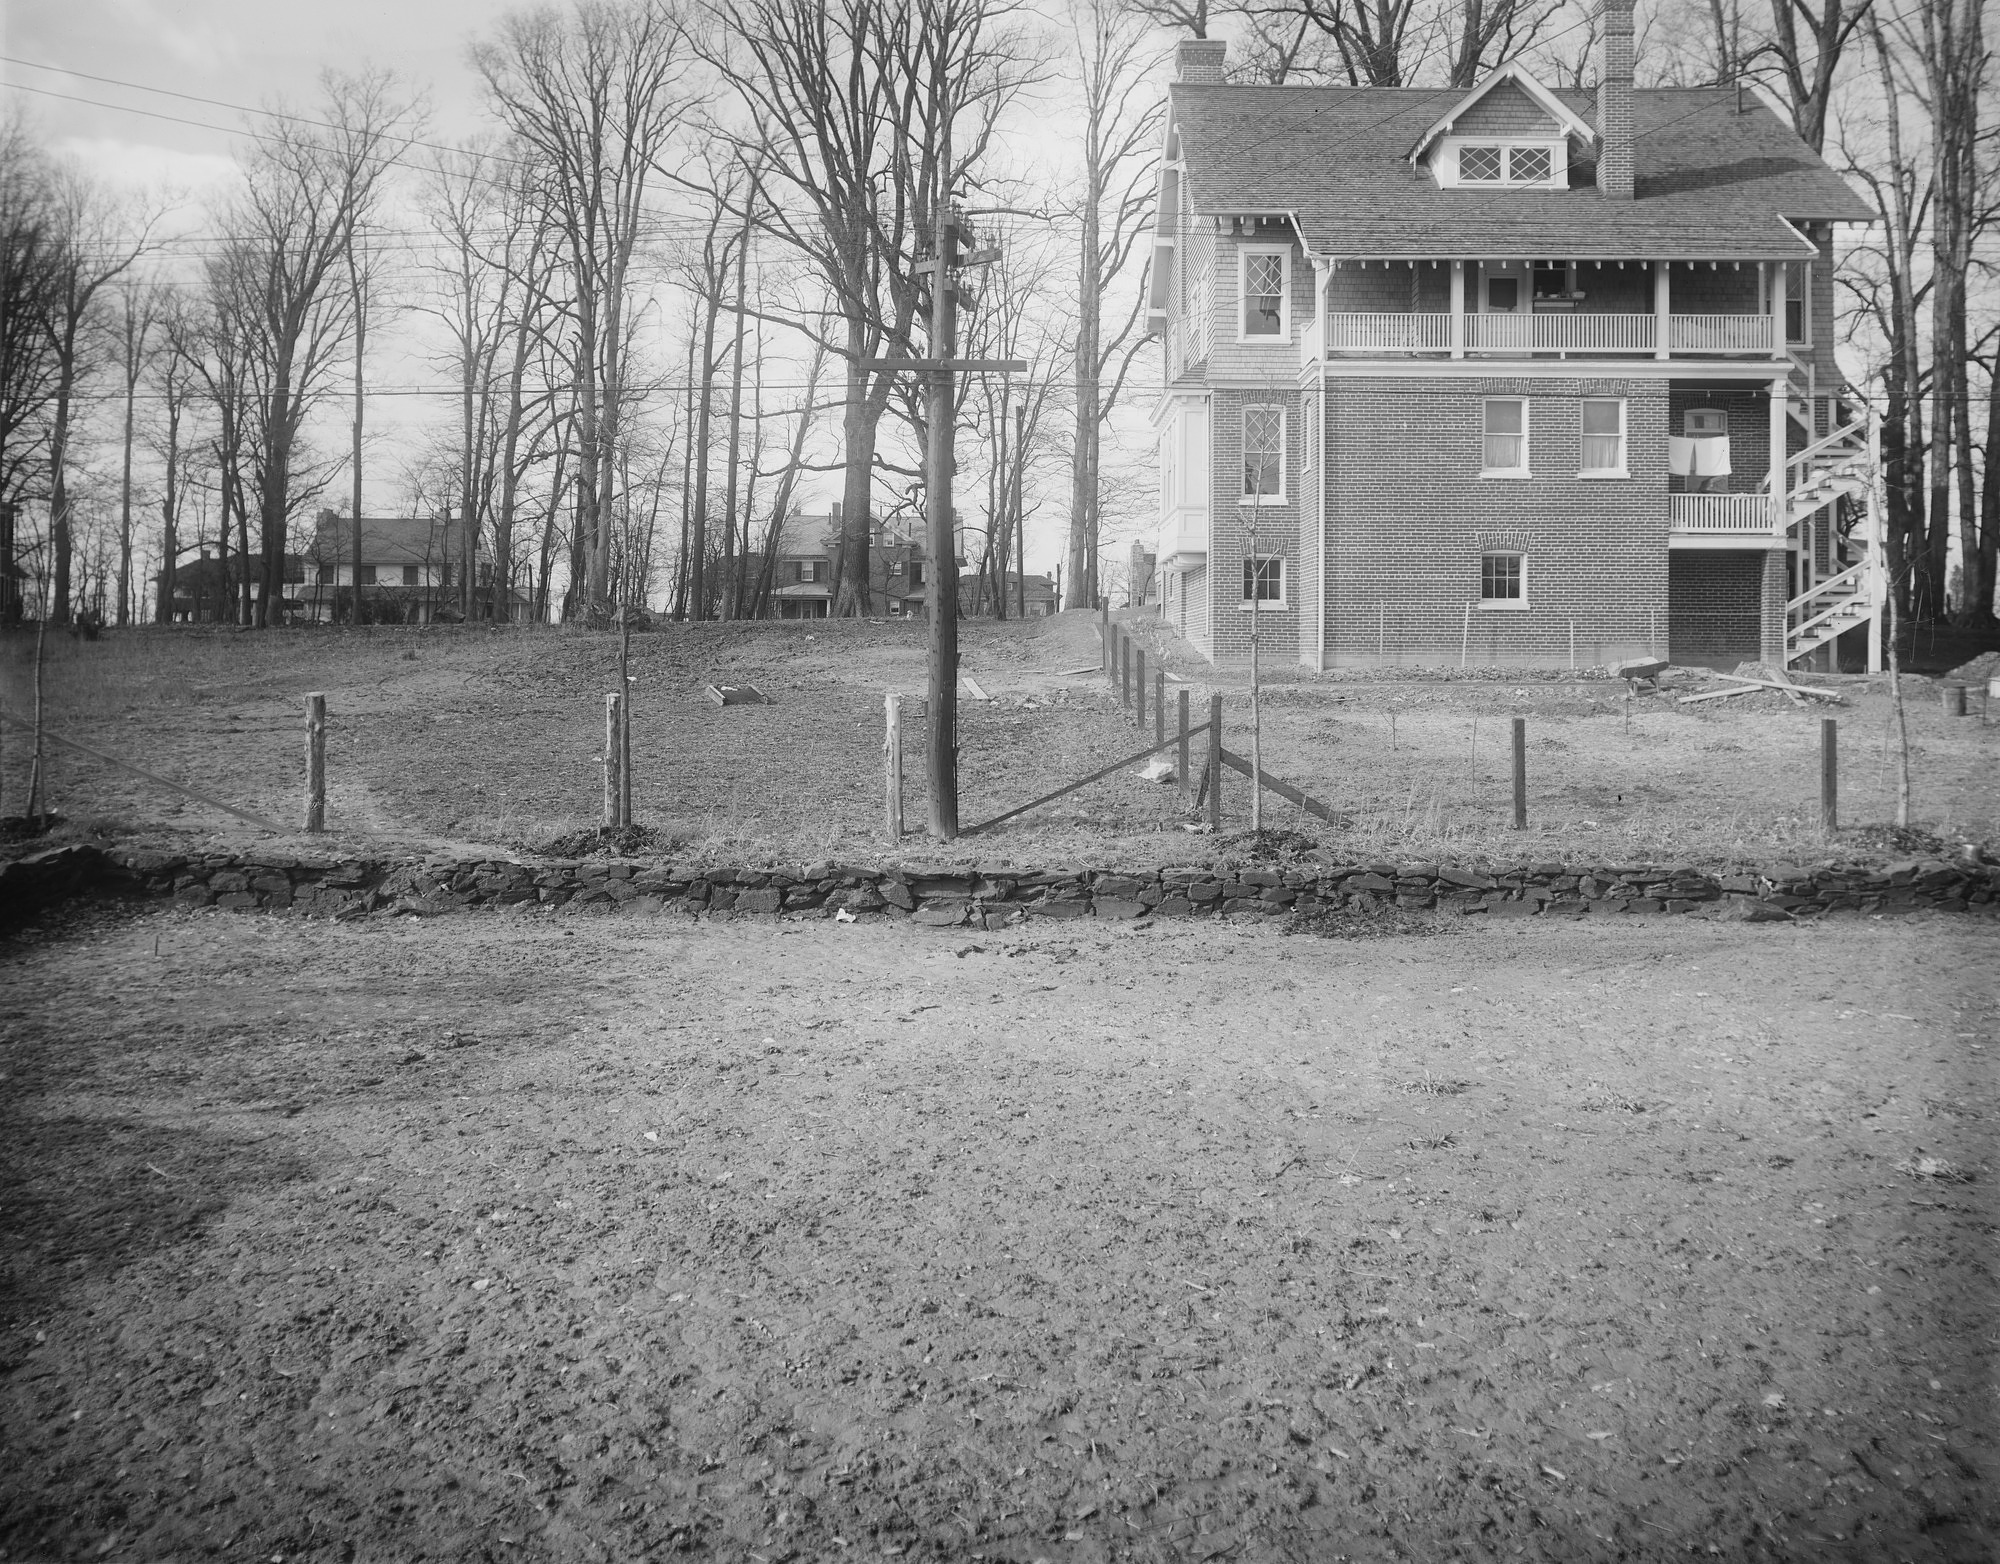 [Ogilby Garden]: the back of the property and an adjacent house.